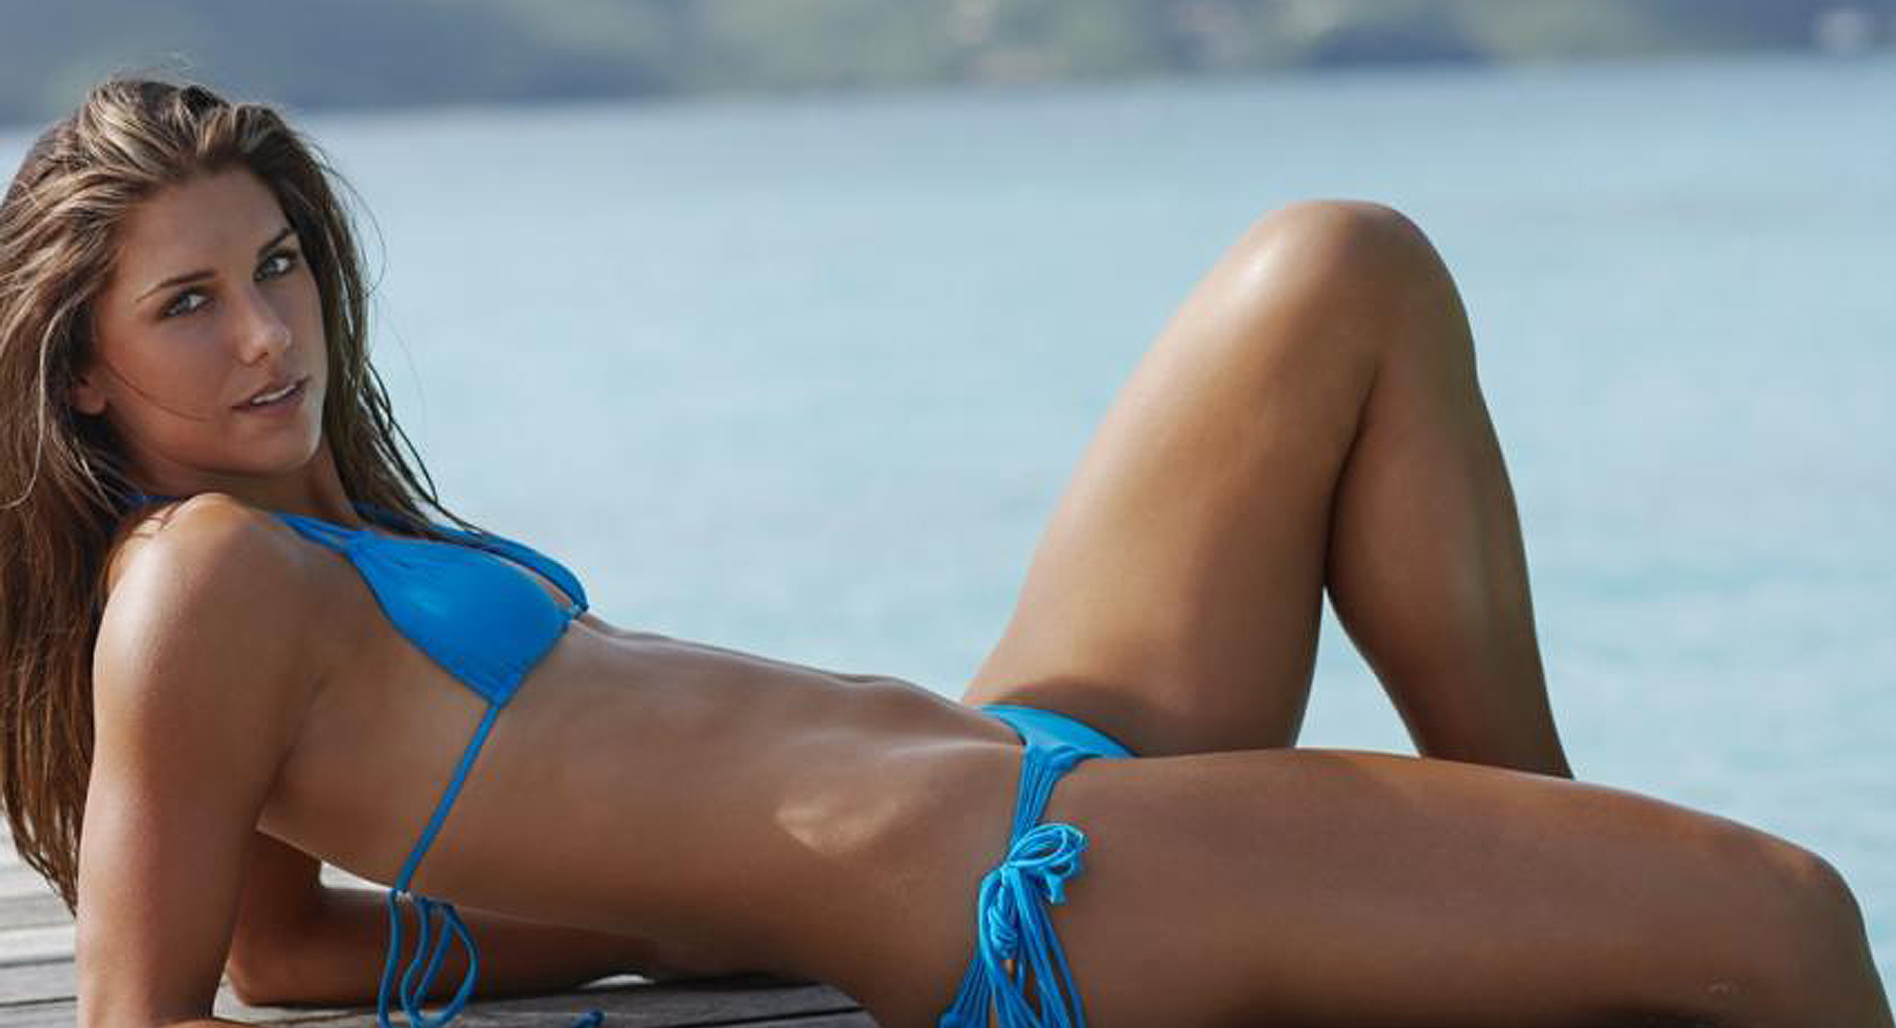 REVEALED: The SEXIEST athletes